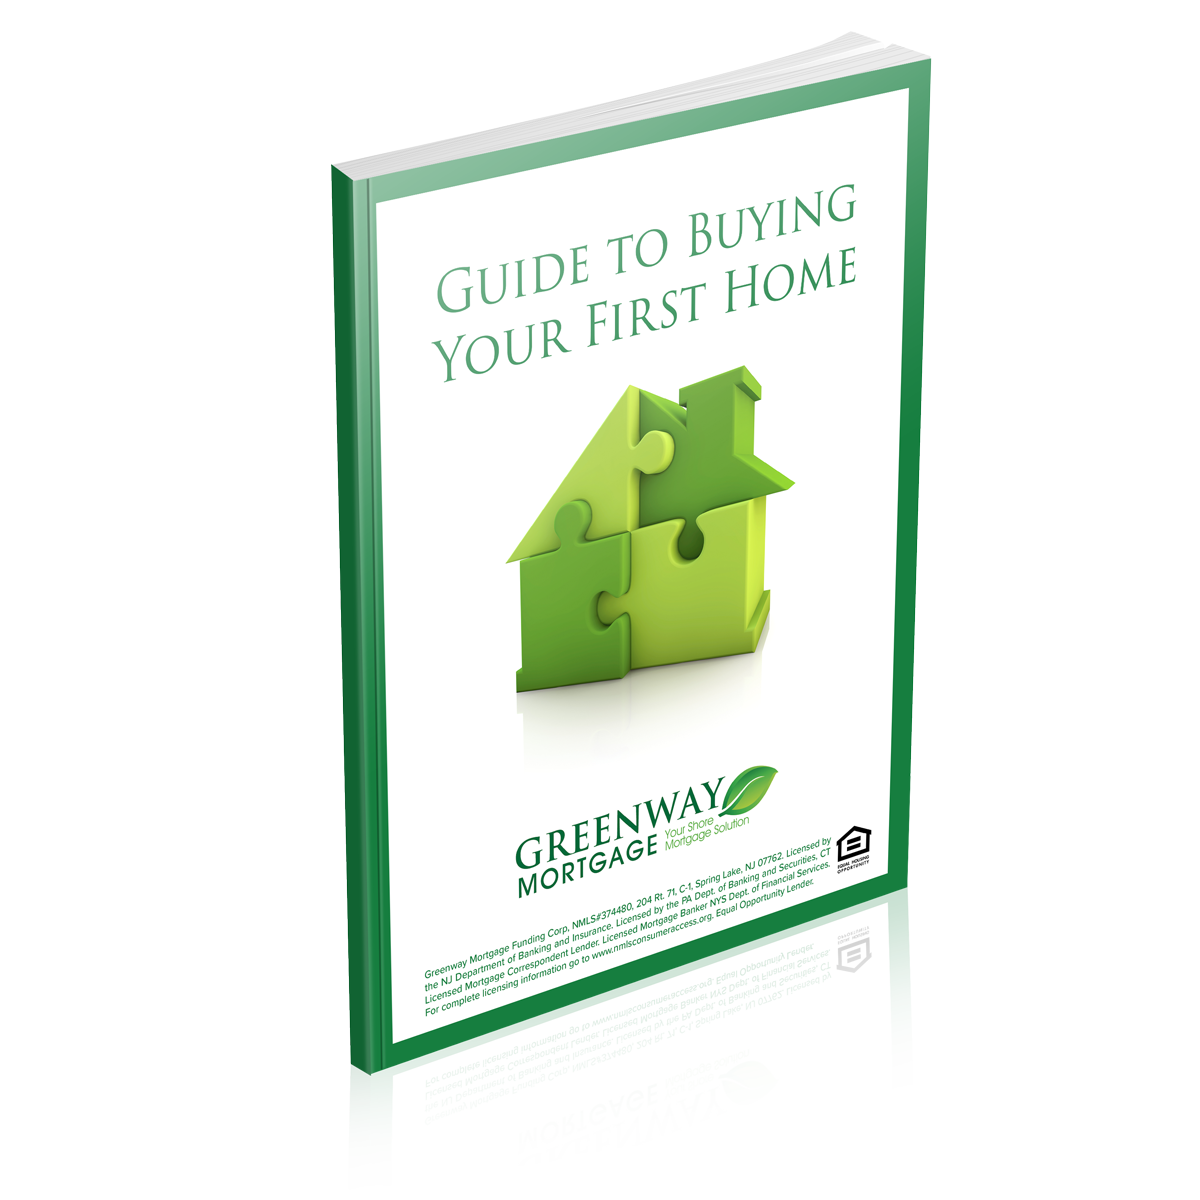 Greenway Mortgage's Guide to Buying your First Home